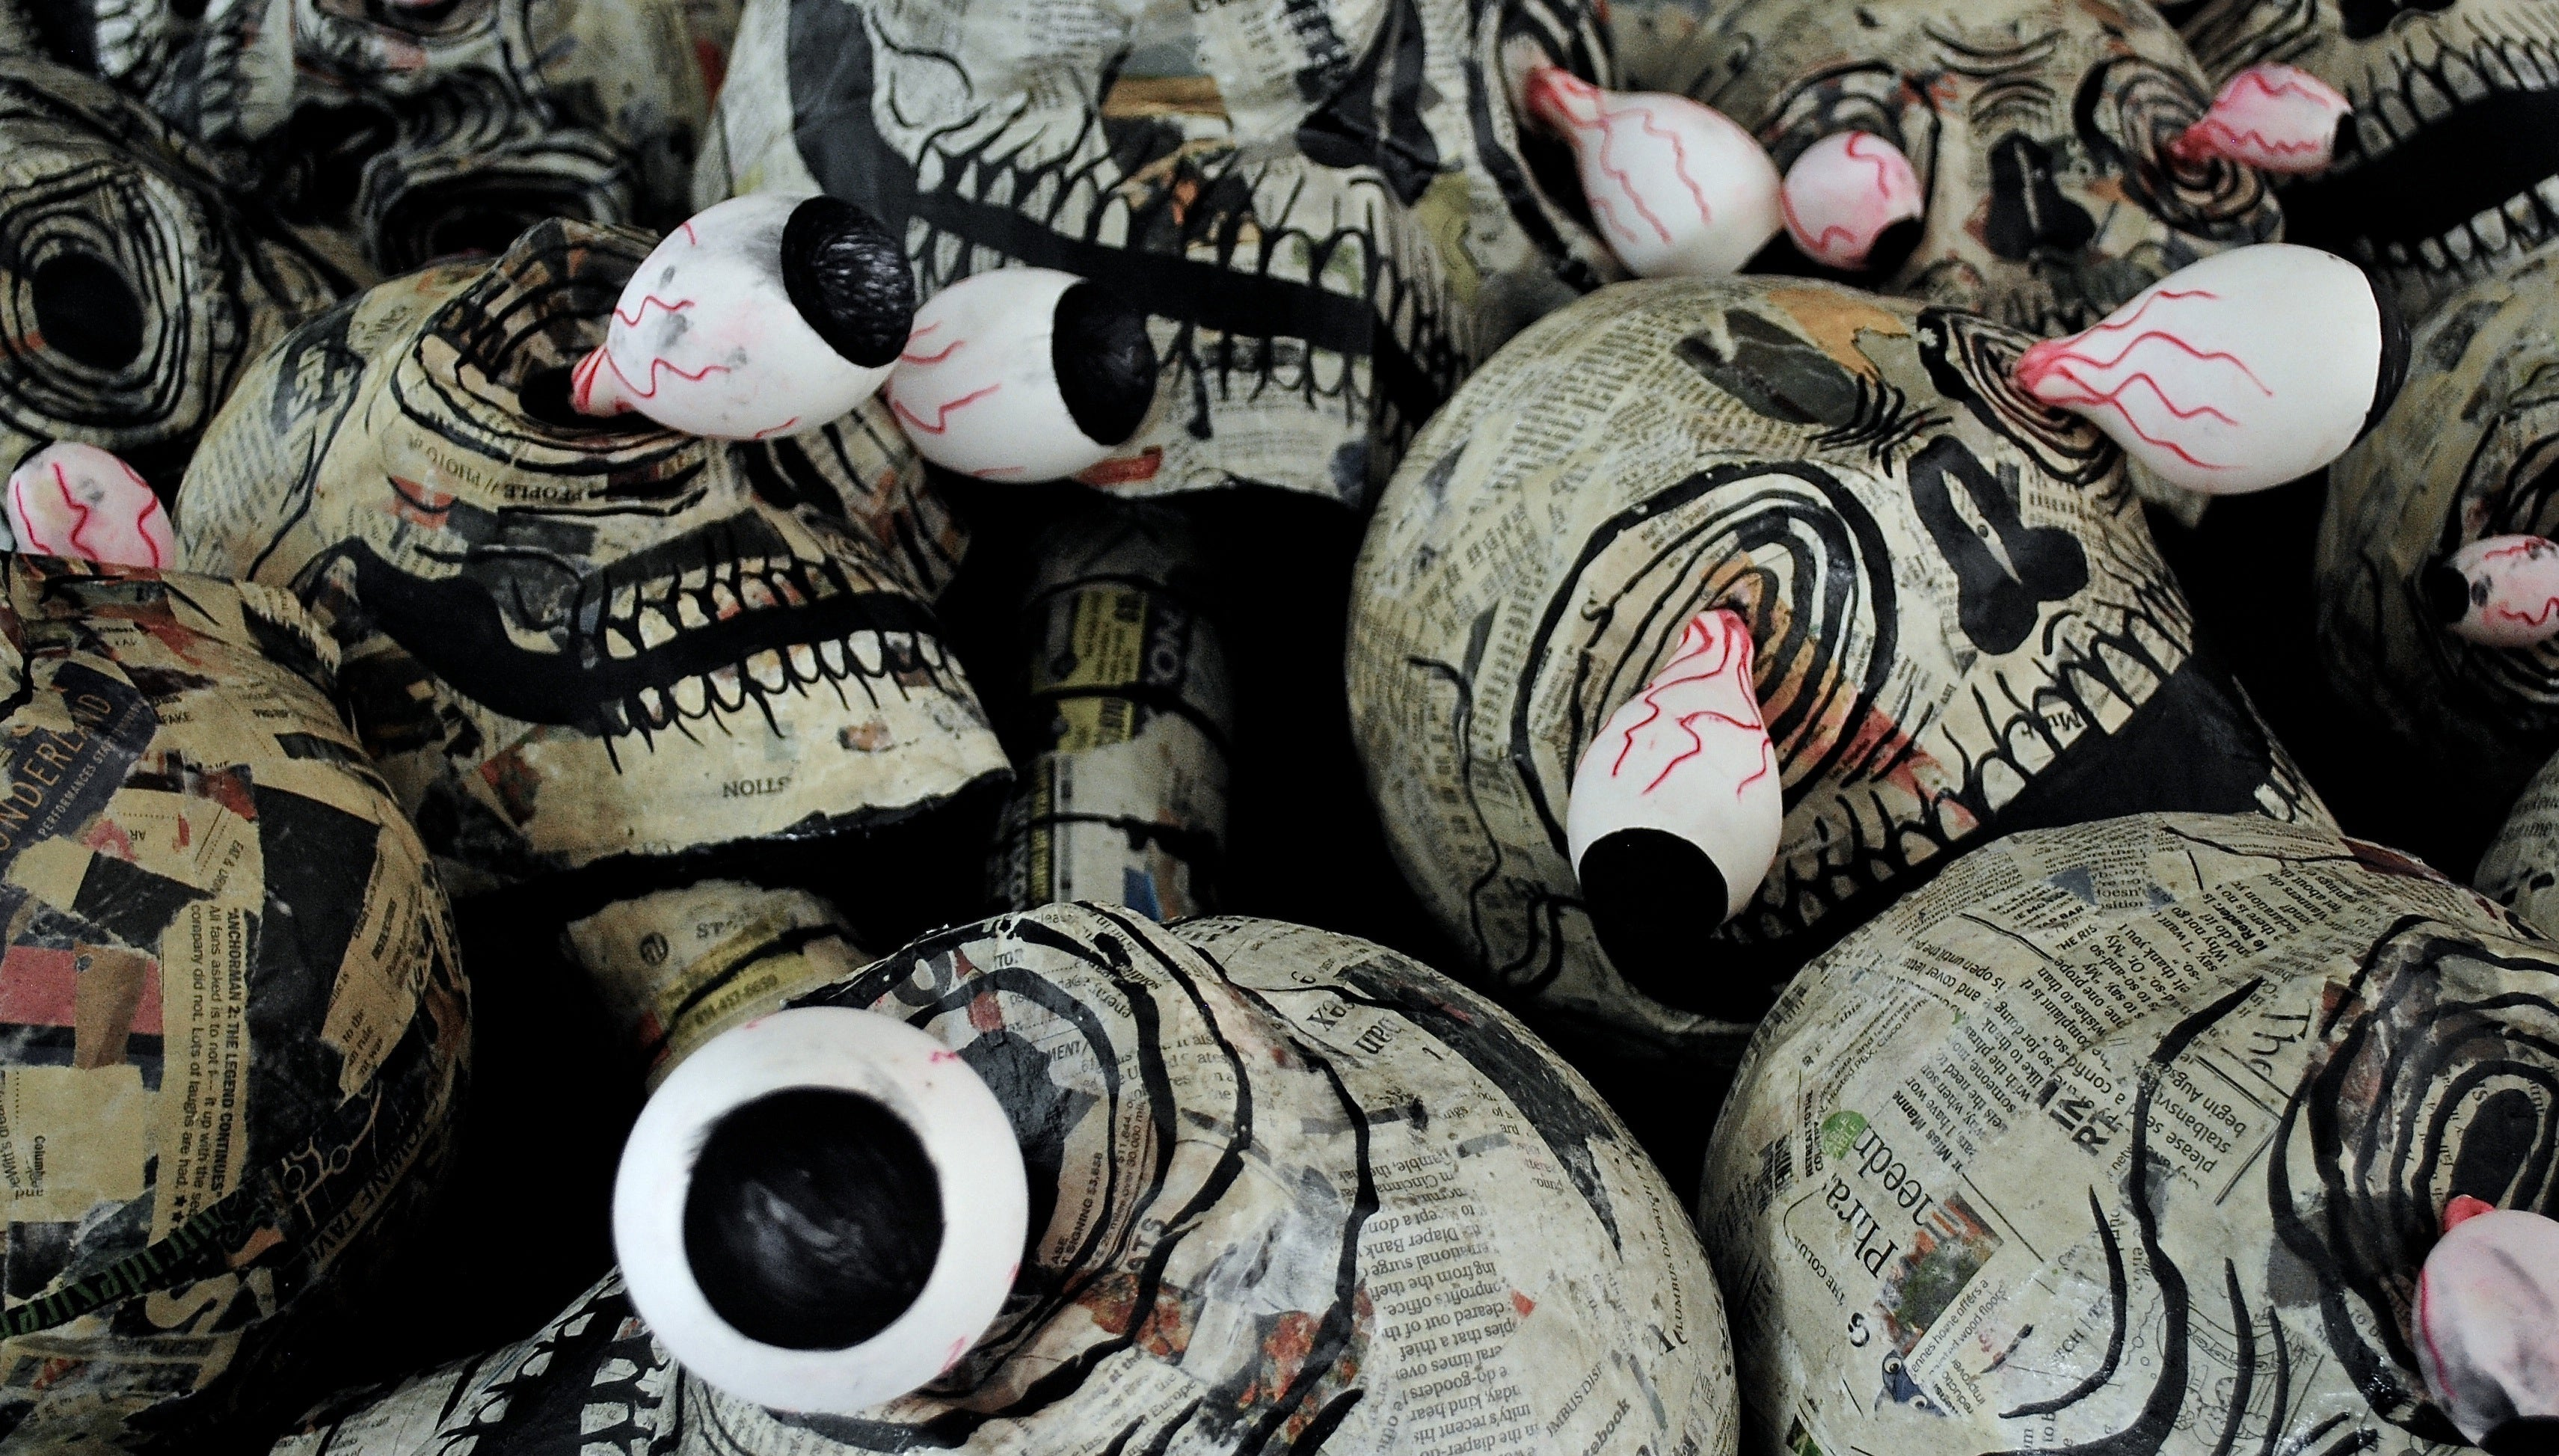 Rietenbach-Tim-The-Man-2014-mixed-media-papier-mache-installation-dimensions-approx.-15-x-20-x-10_SIZED.jpg